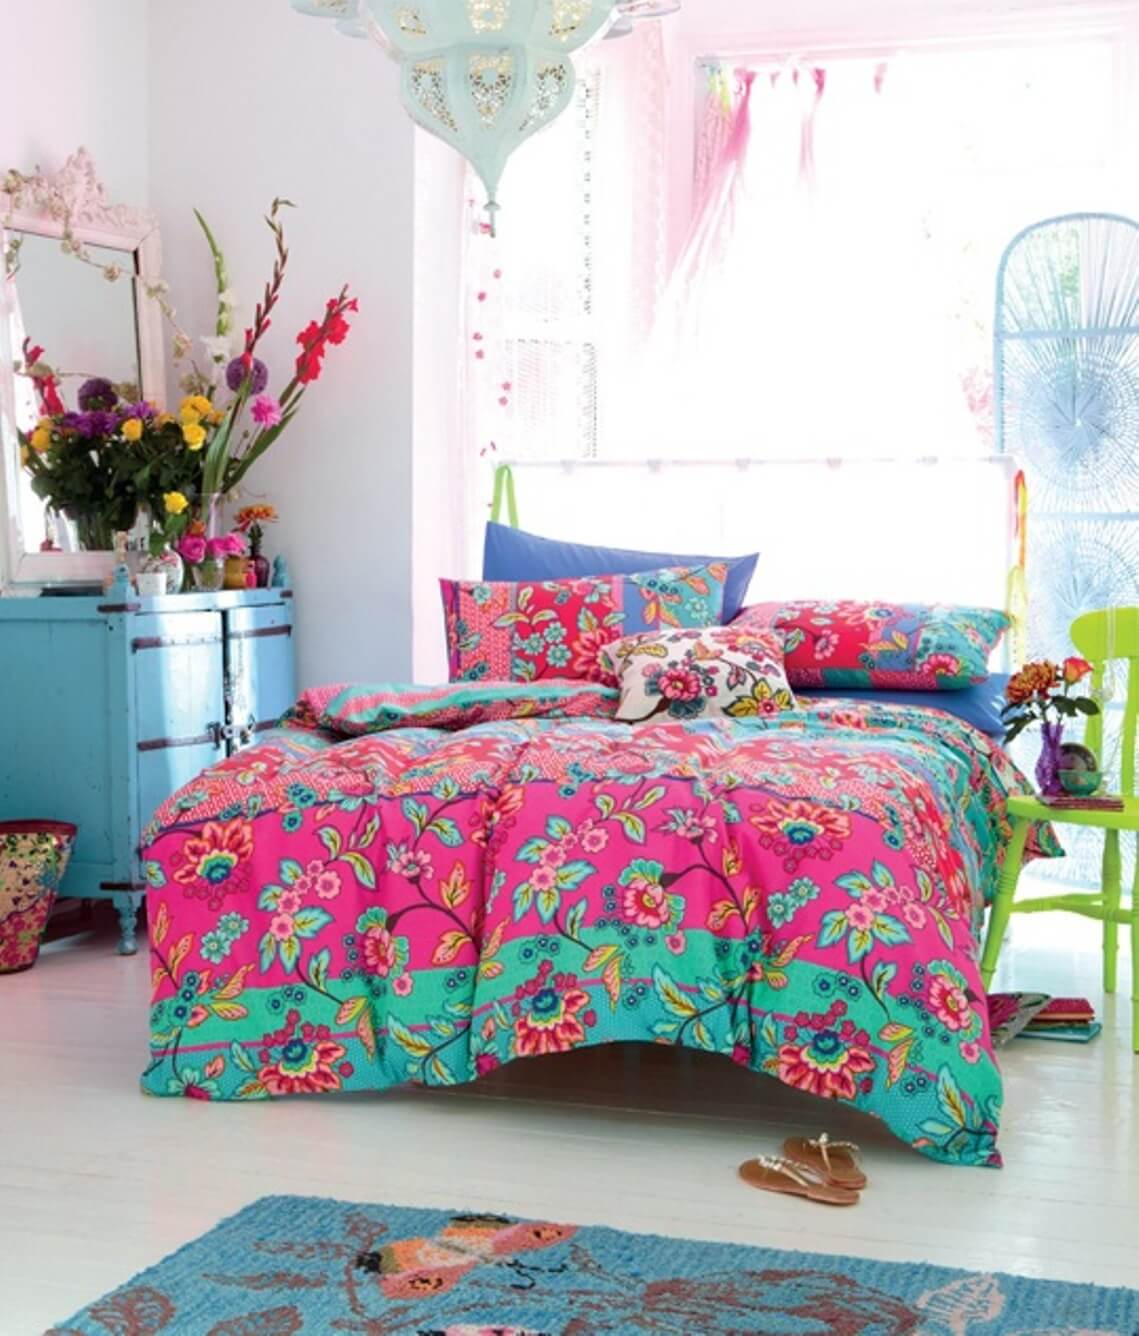 8 bohemian chic teen girl 39 s bedroom ideas - Colorful teen bedroom designs ...